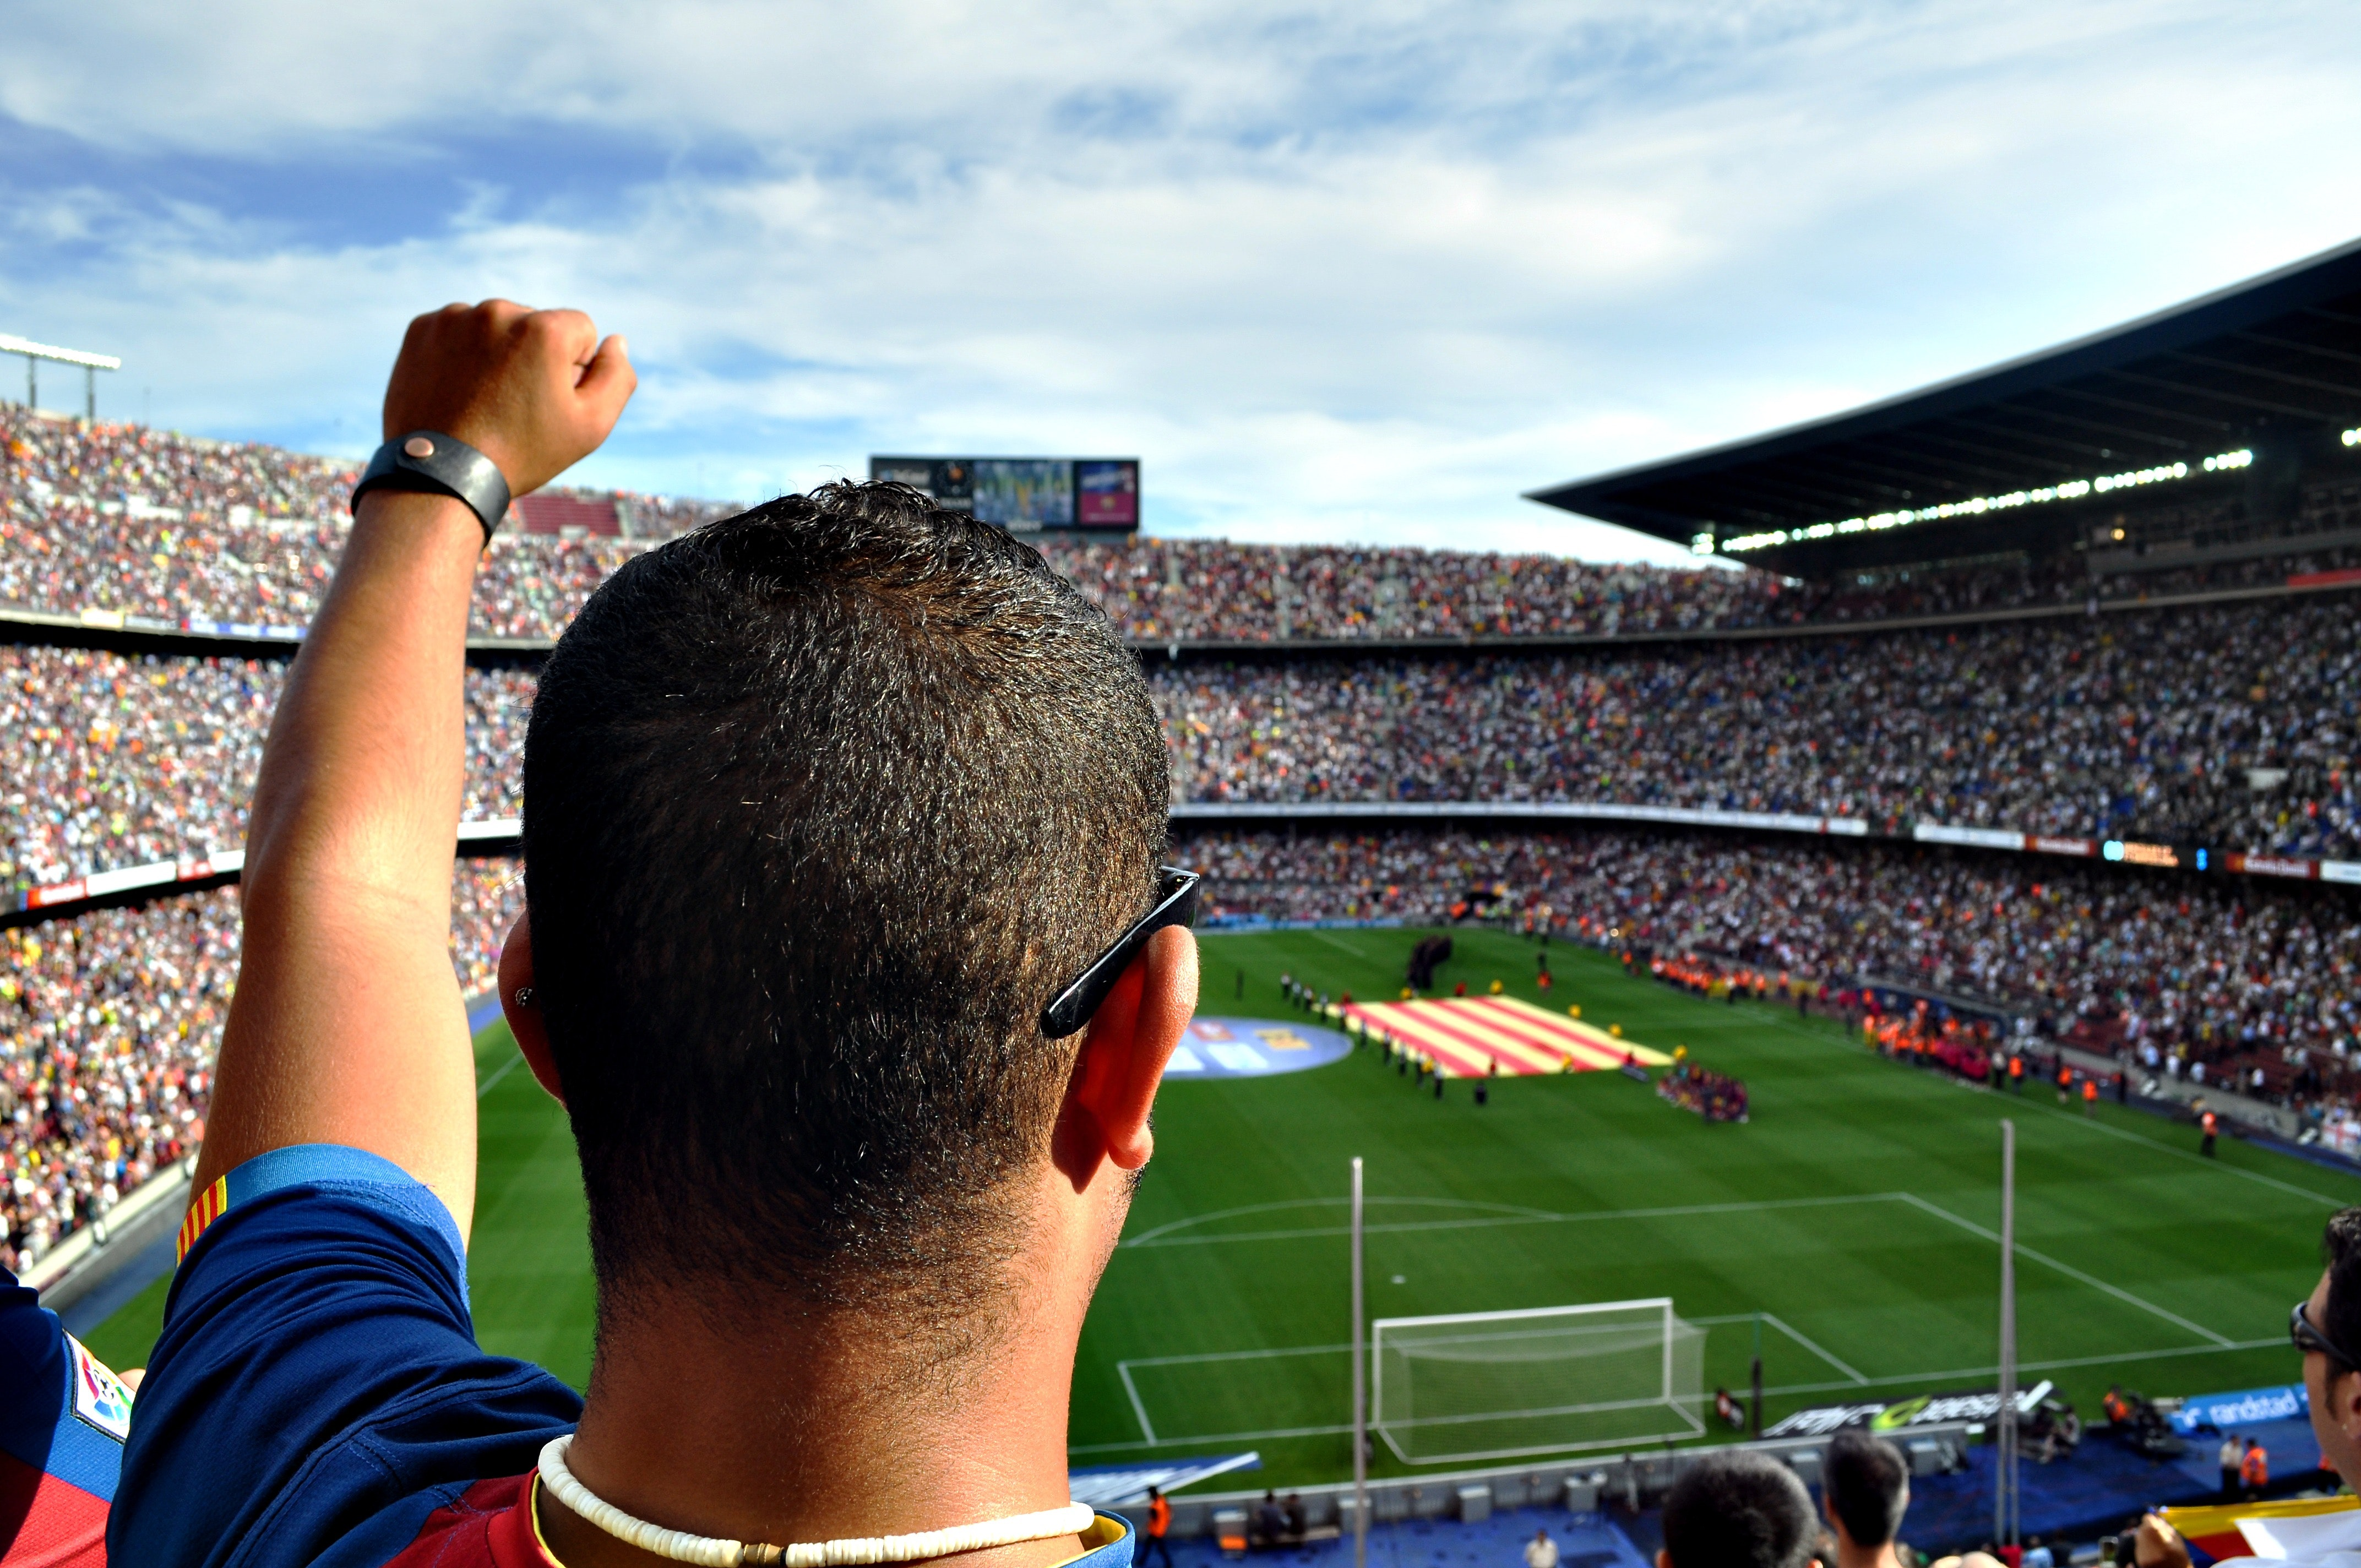 Engaging customers: the sky is the limit in football